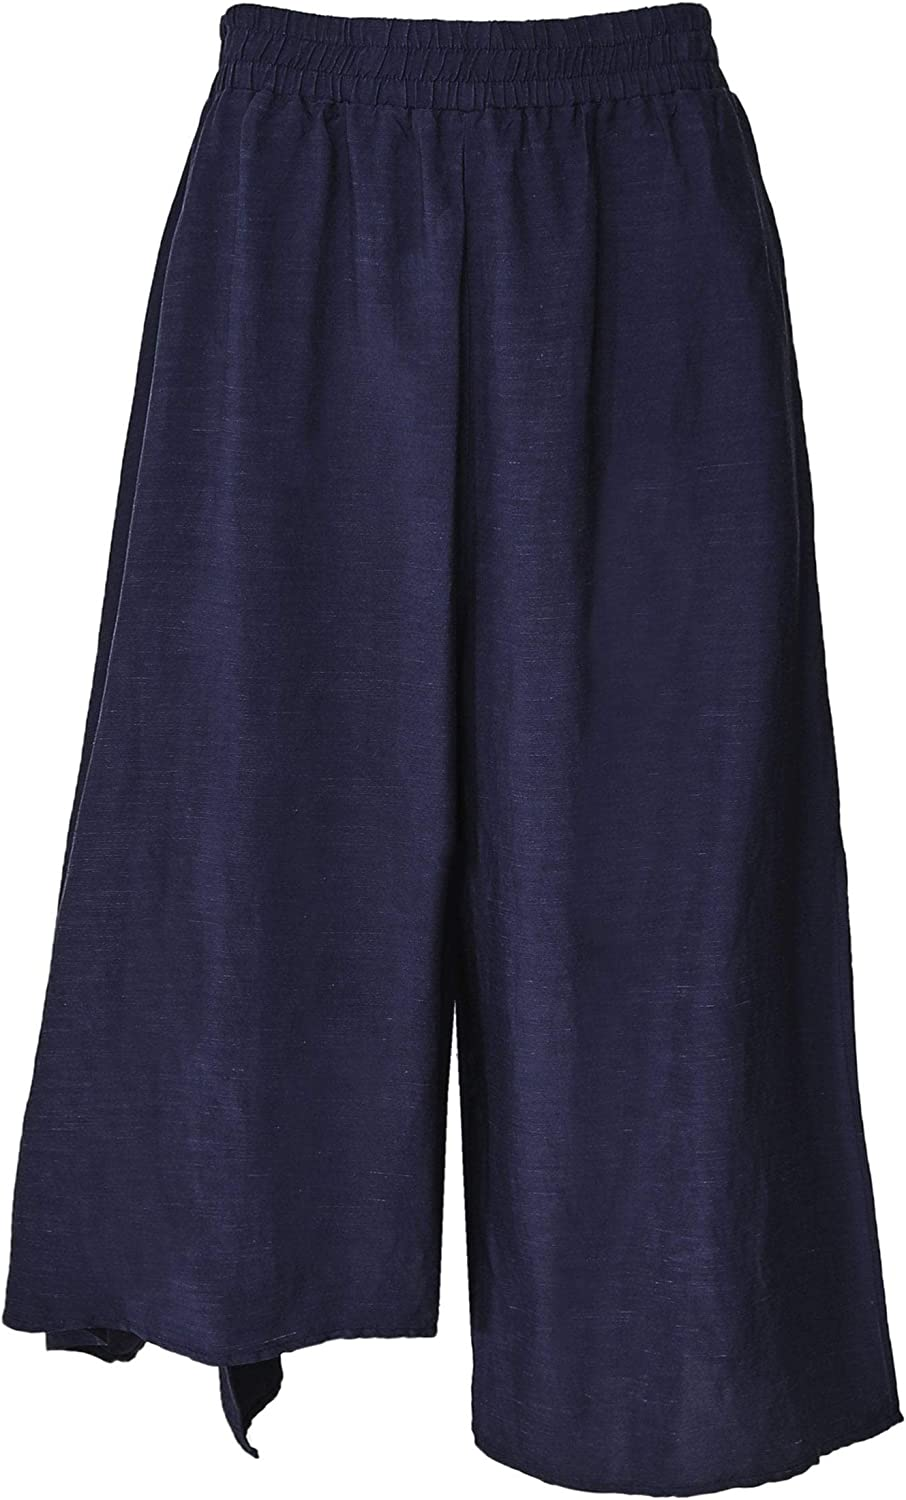 Crea Concept Women's Wide Leg Culotte Trousers Navy